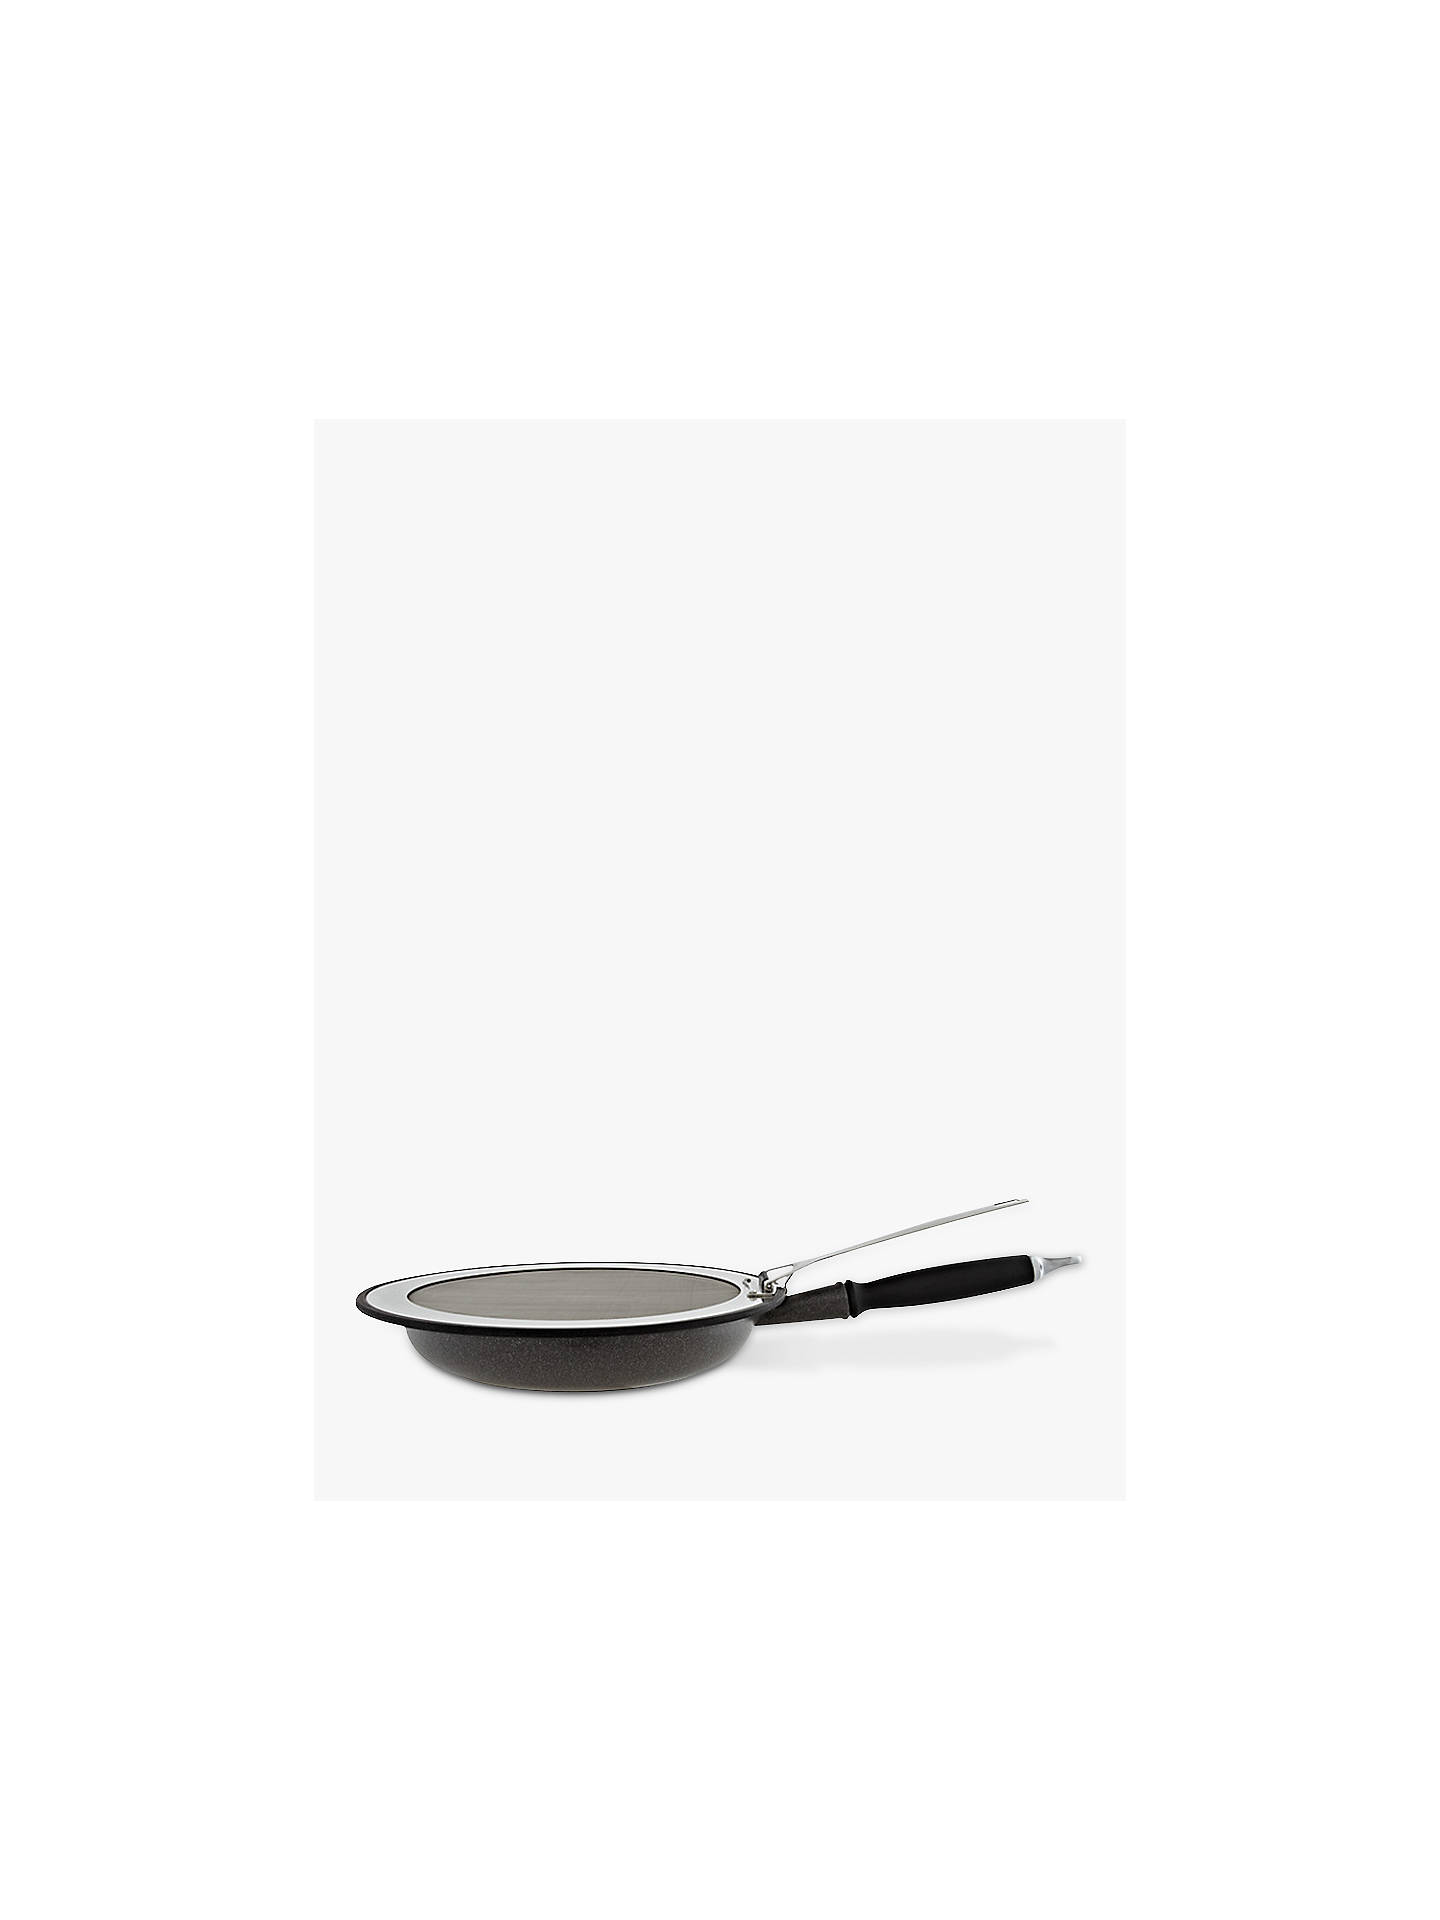 BuyLe Creuset 3-Ply Stainless Steel Splatter Guard, 30cm Online at johnlewis.com